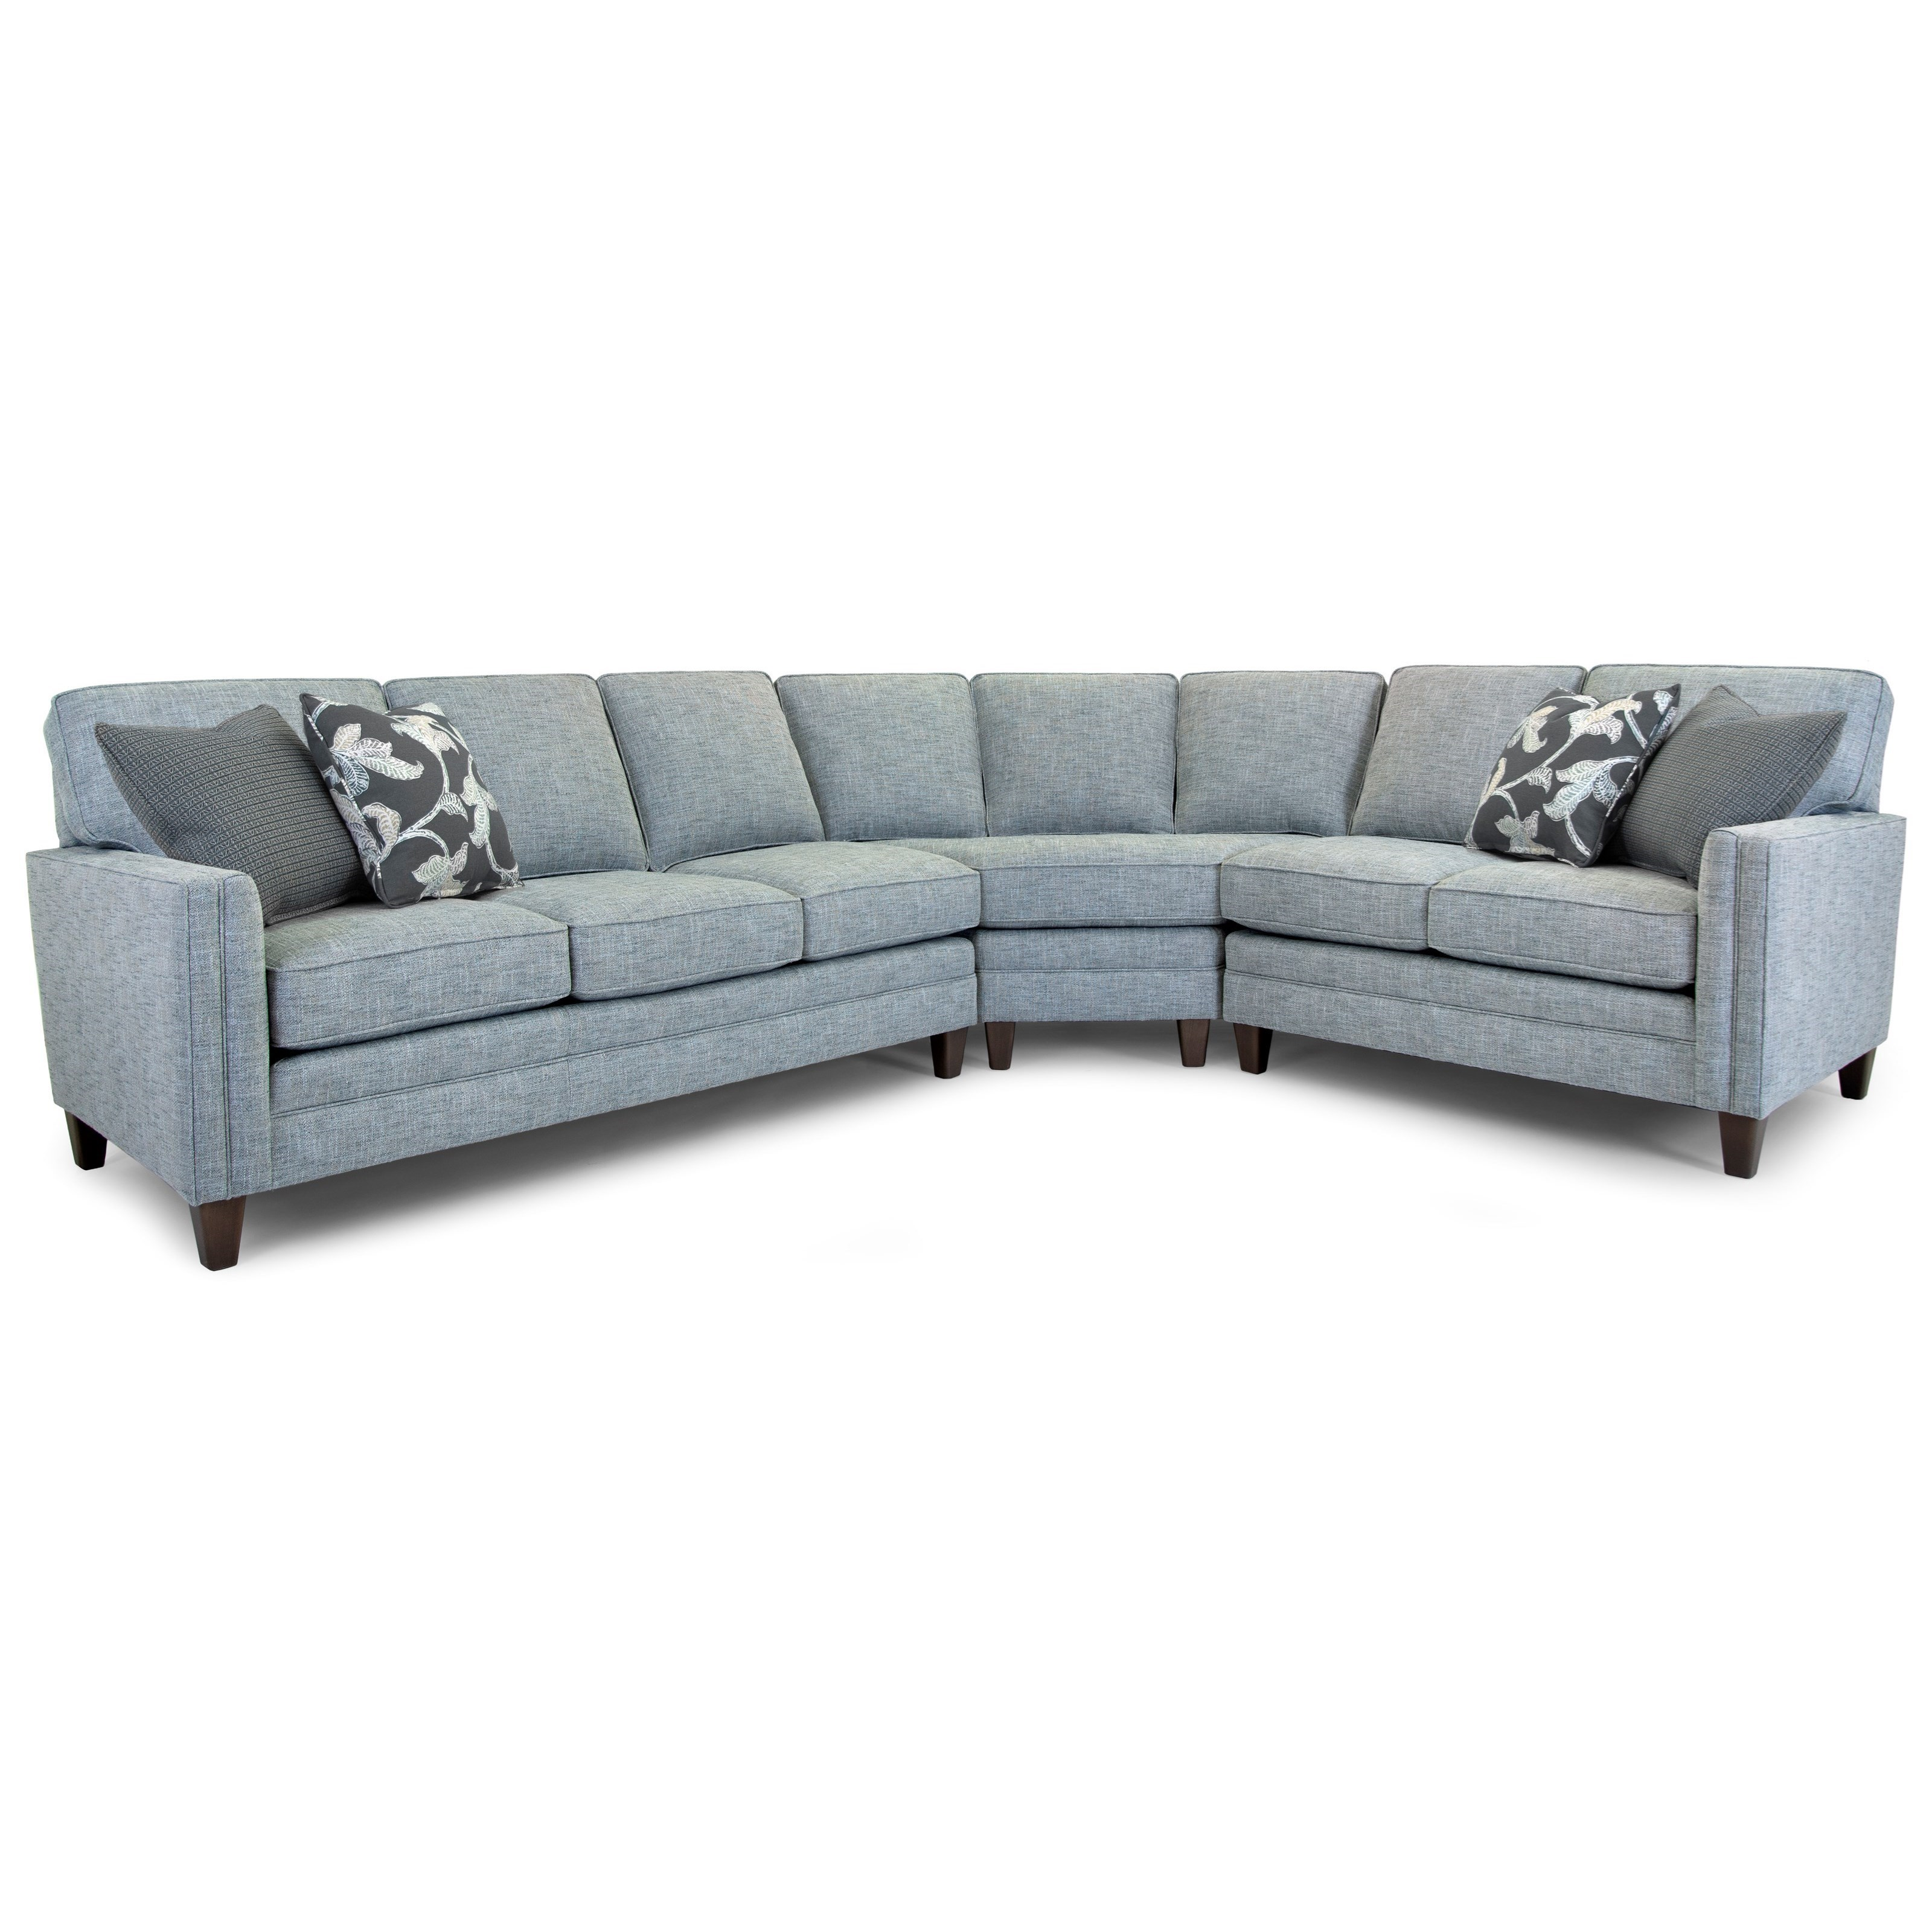 Smith Brothers Build Your Own 3000 Series Customizable 3 Piece Sectional With Banded Arms Tapered Legs And Semi Attached Back Wayside Furniture Sectional Sofas